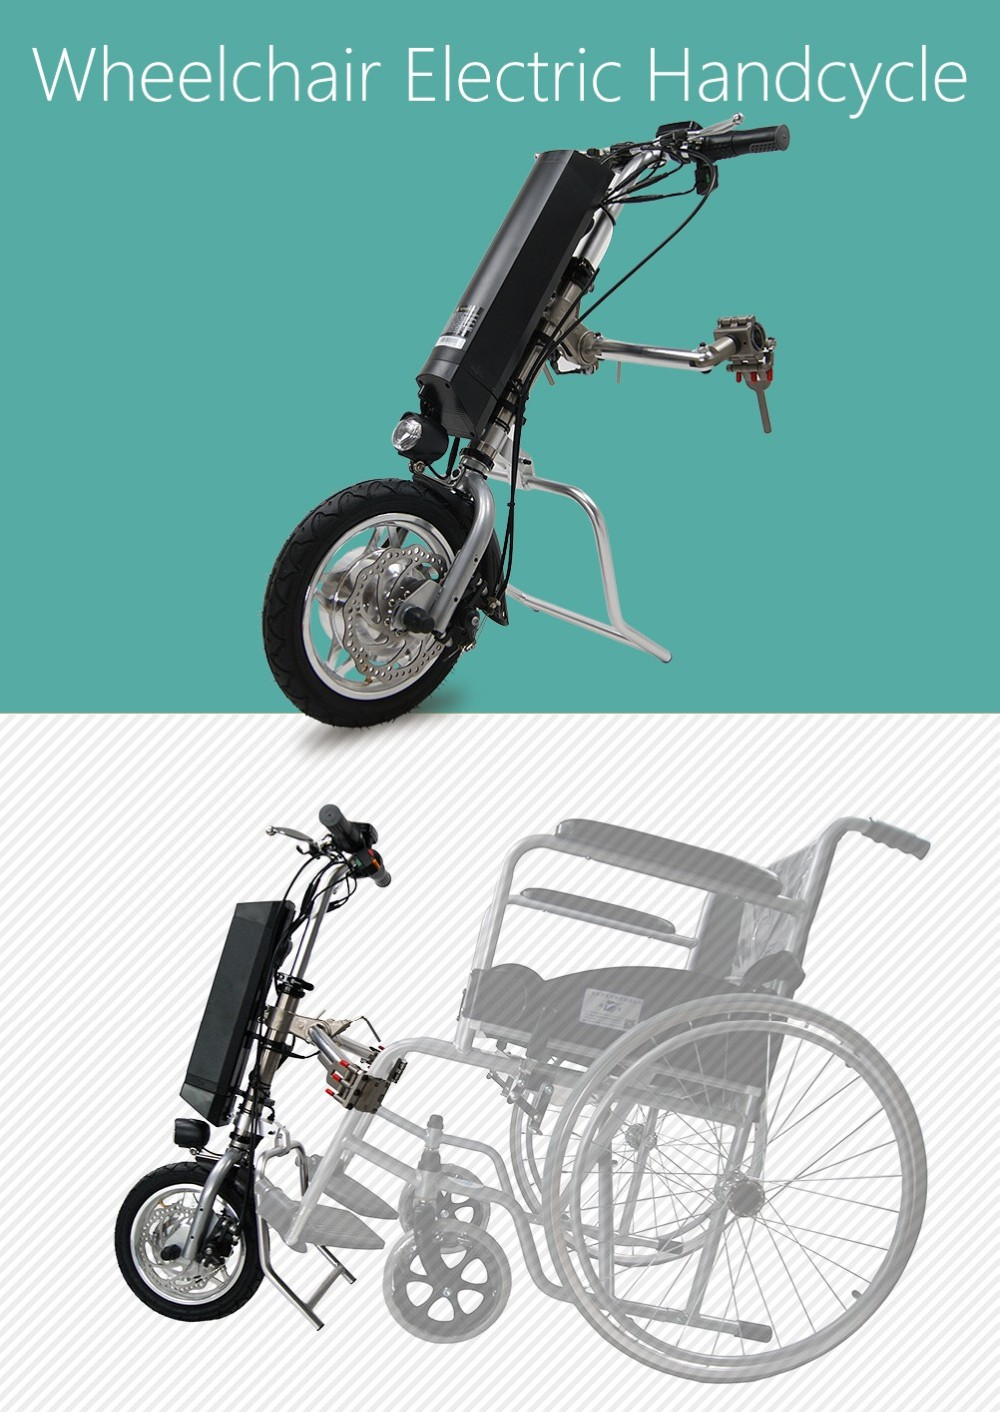 36V 250W safety attacheble powered electric wheelchair handcycle carrier